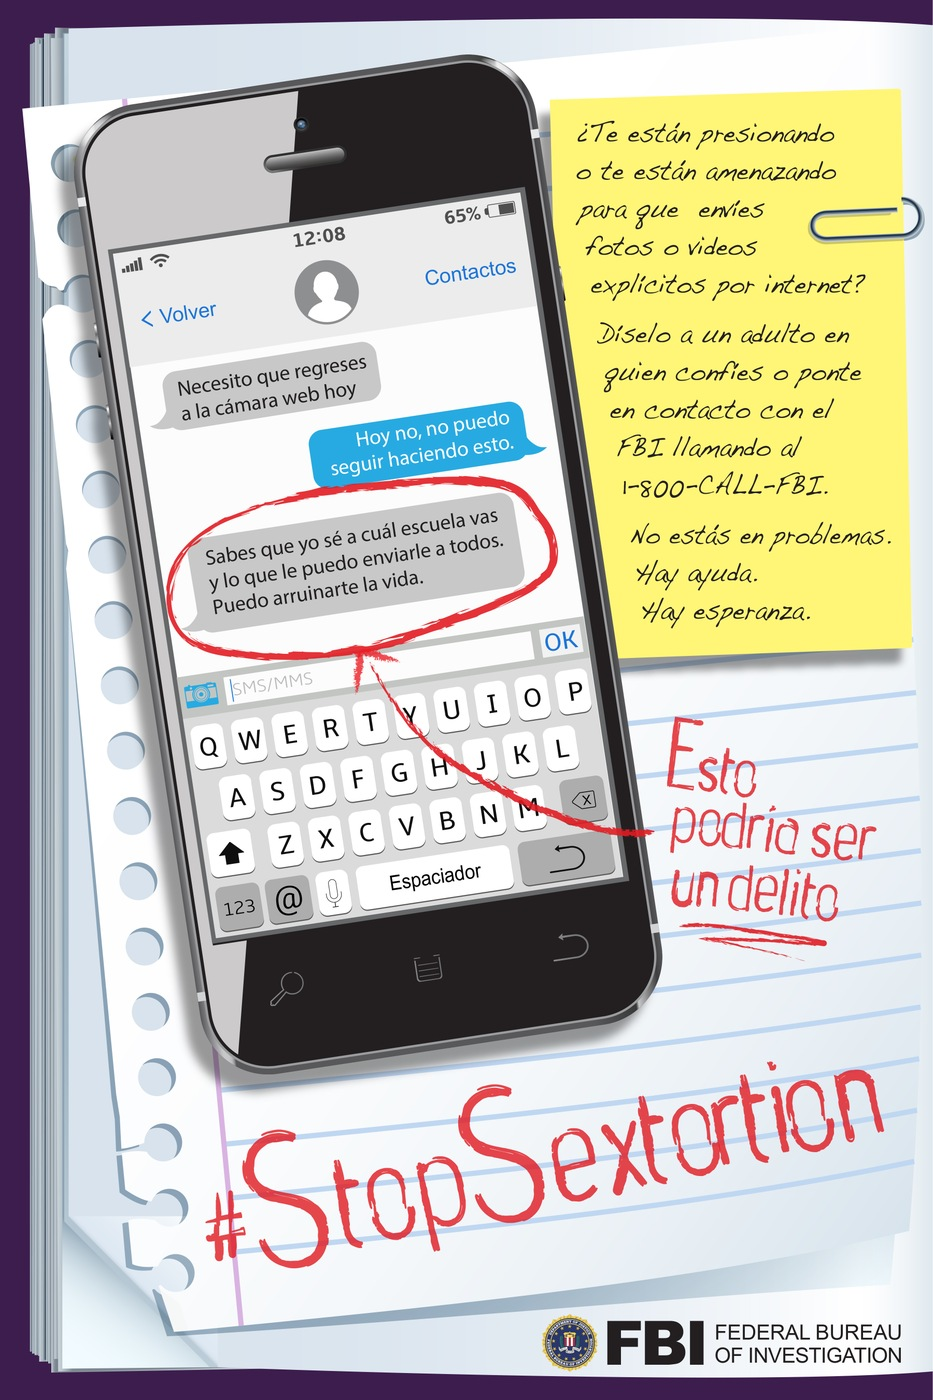 Spanish version of poster encouraging young people to report sextortion to the FBI if they are a victim.